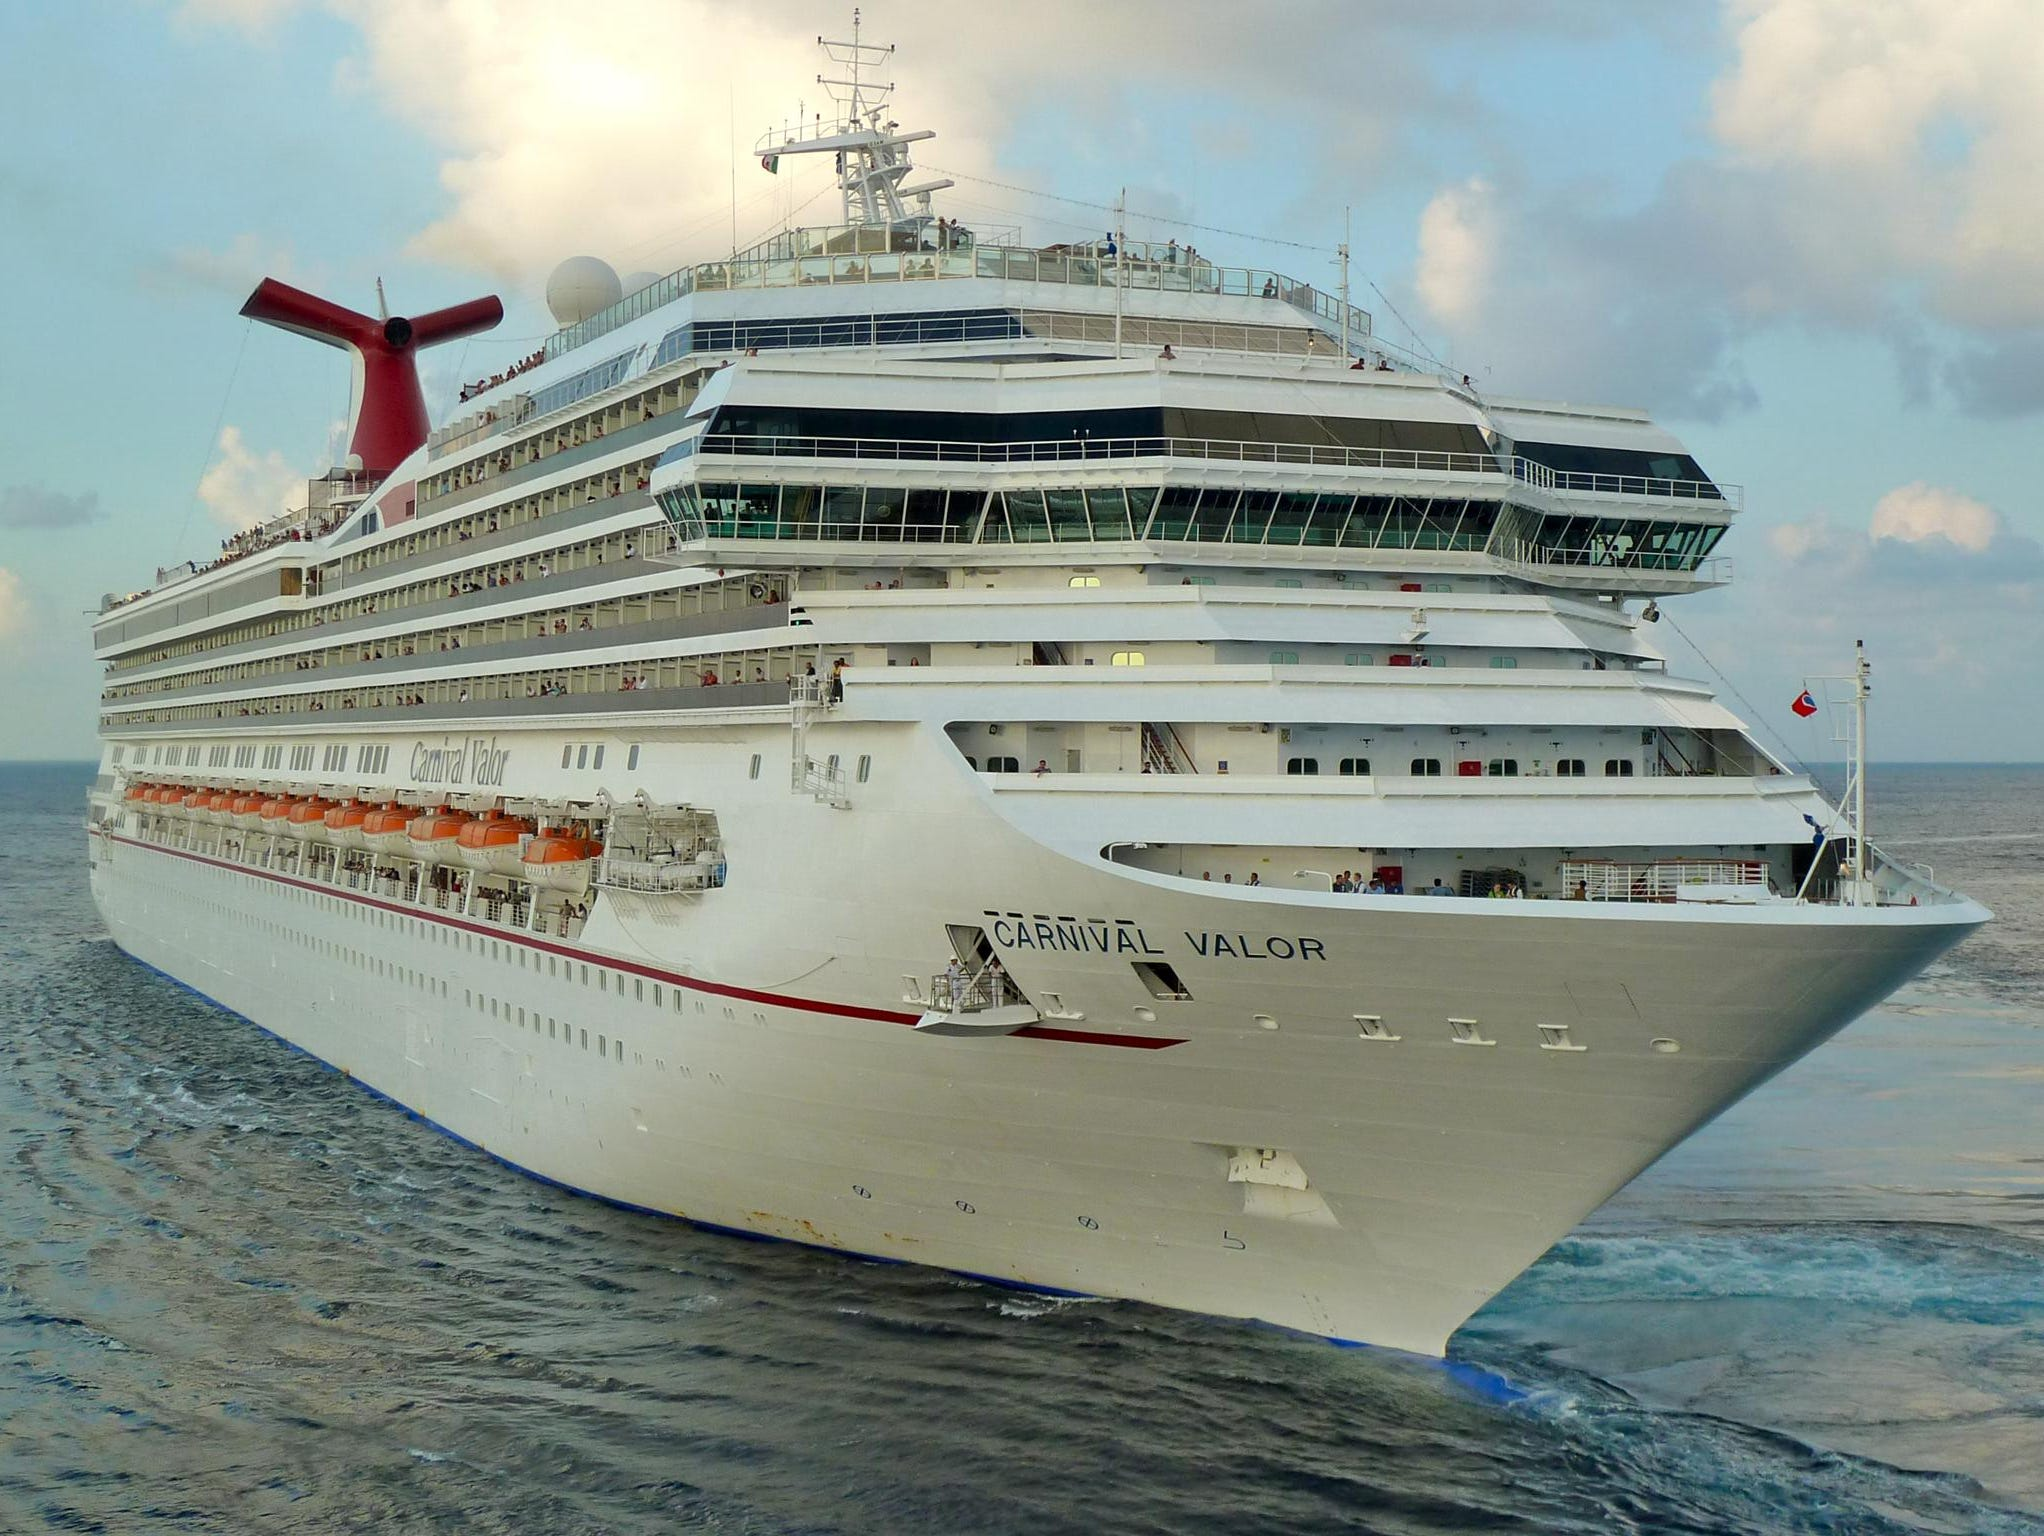 Carnival Cruise Line's 110,000-gross-ton, 2,974-passenger Carnival Valor is the third of five ships in Carnival's Conquest Class platform that also includes the Carnival Conquest, Carnival Glory, Carnival Freedom and Carnival Liberty.